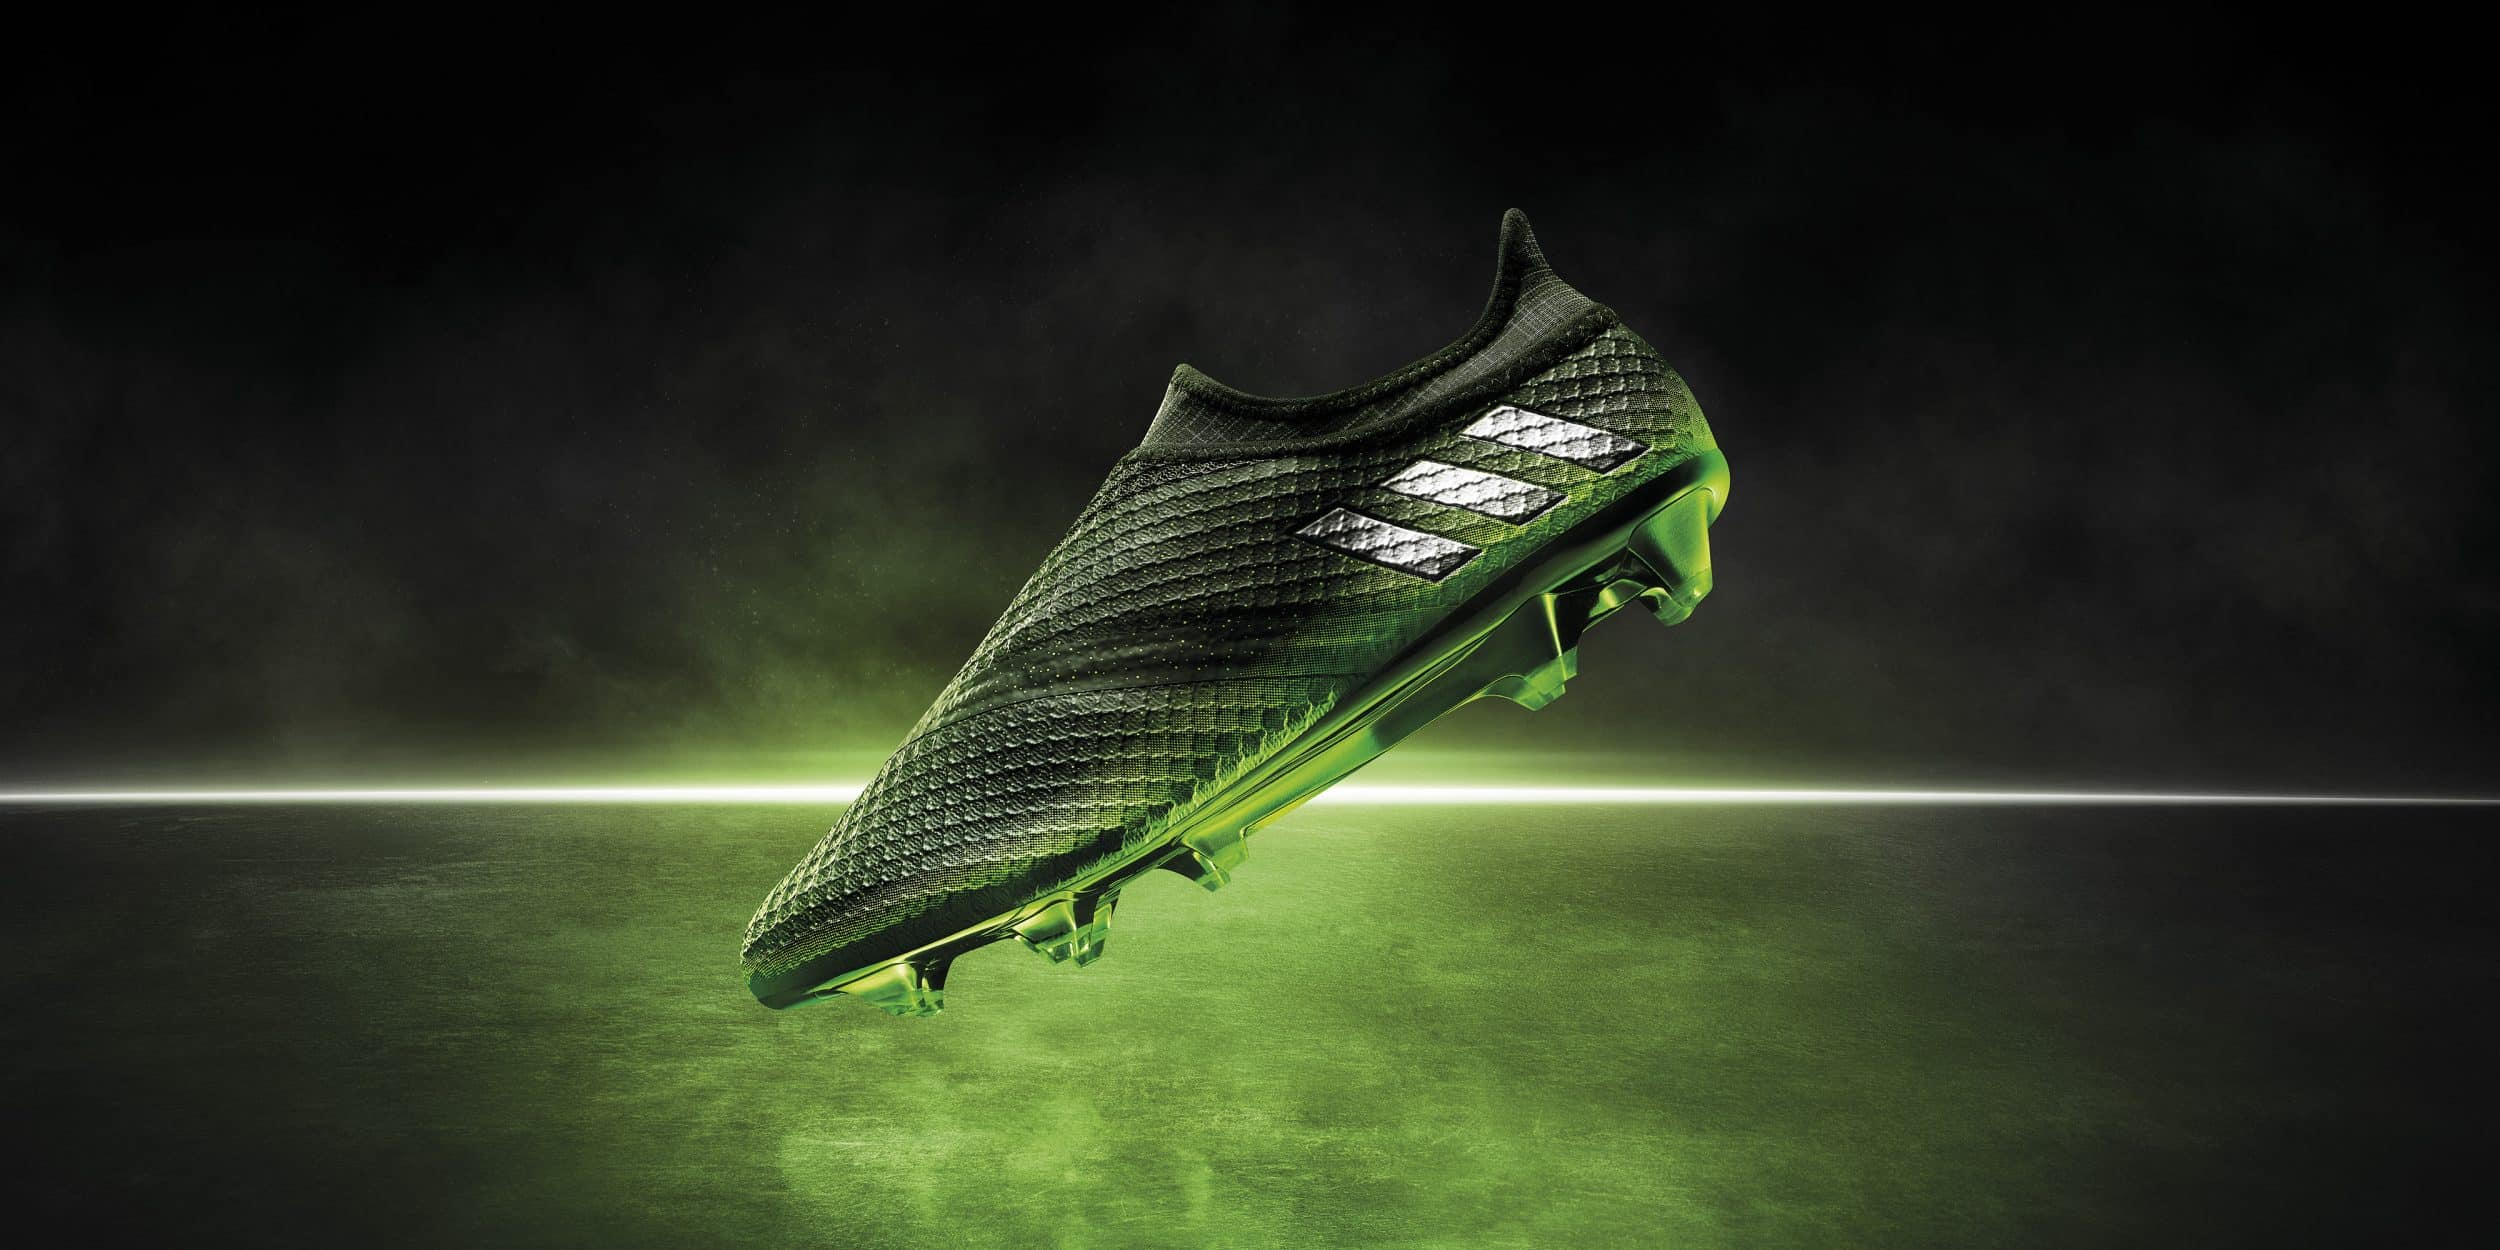 chaussure-foot-adidas-messi16-space-dust-messi-octobre-2016